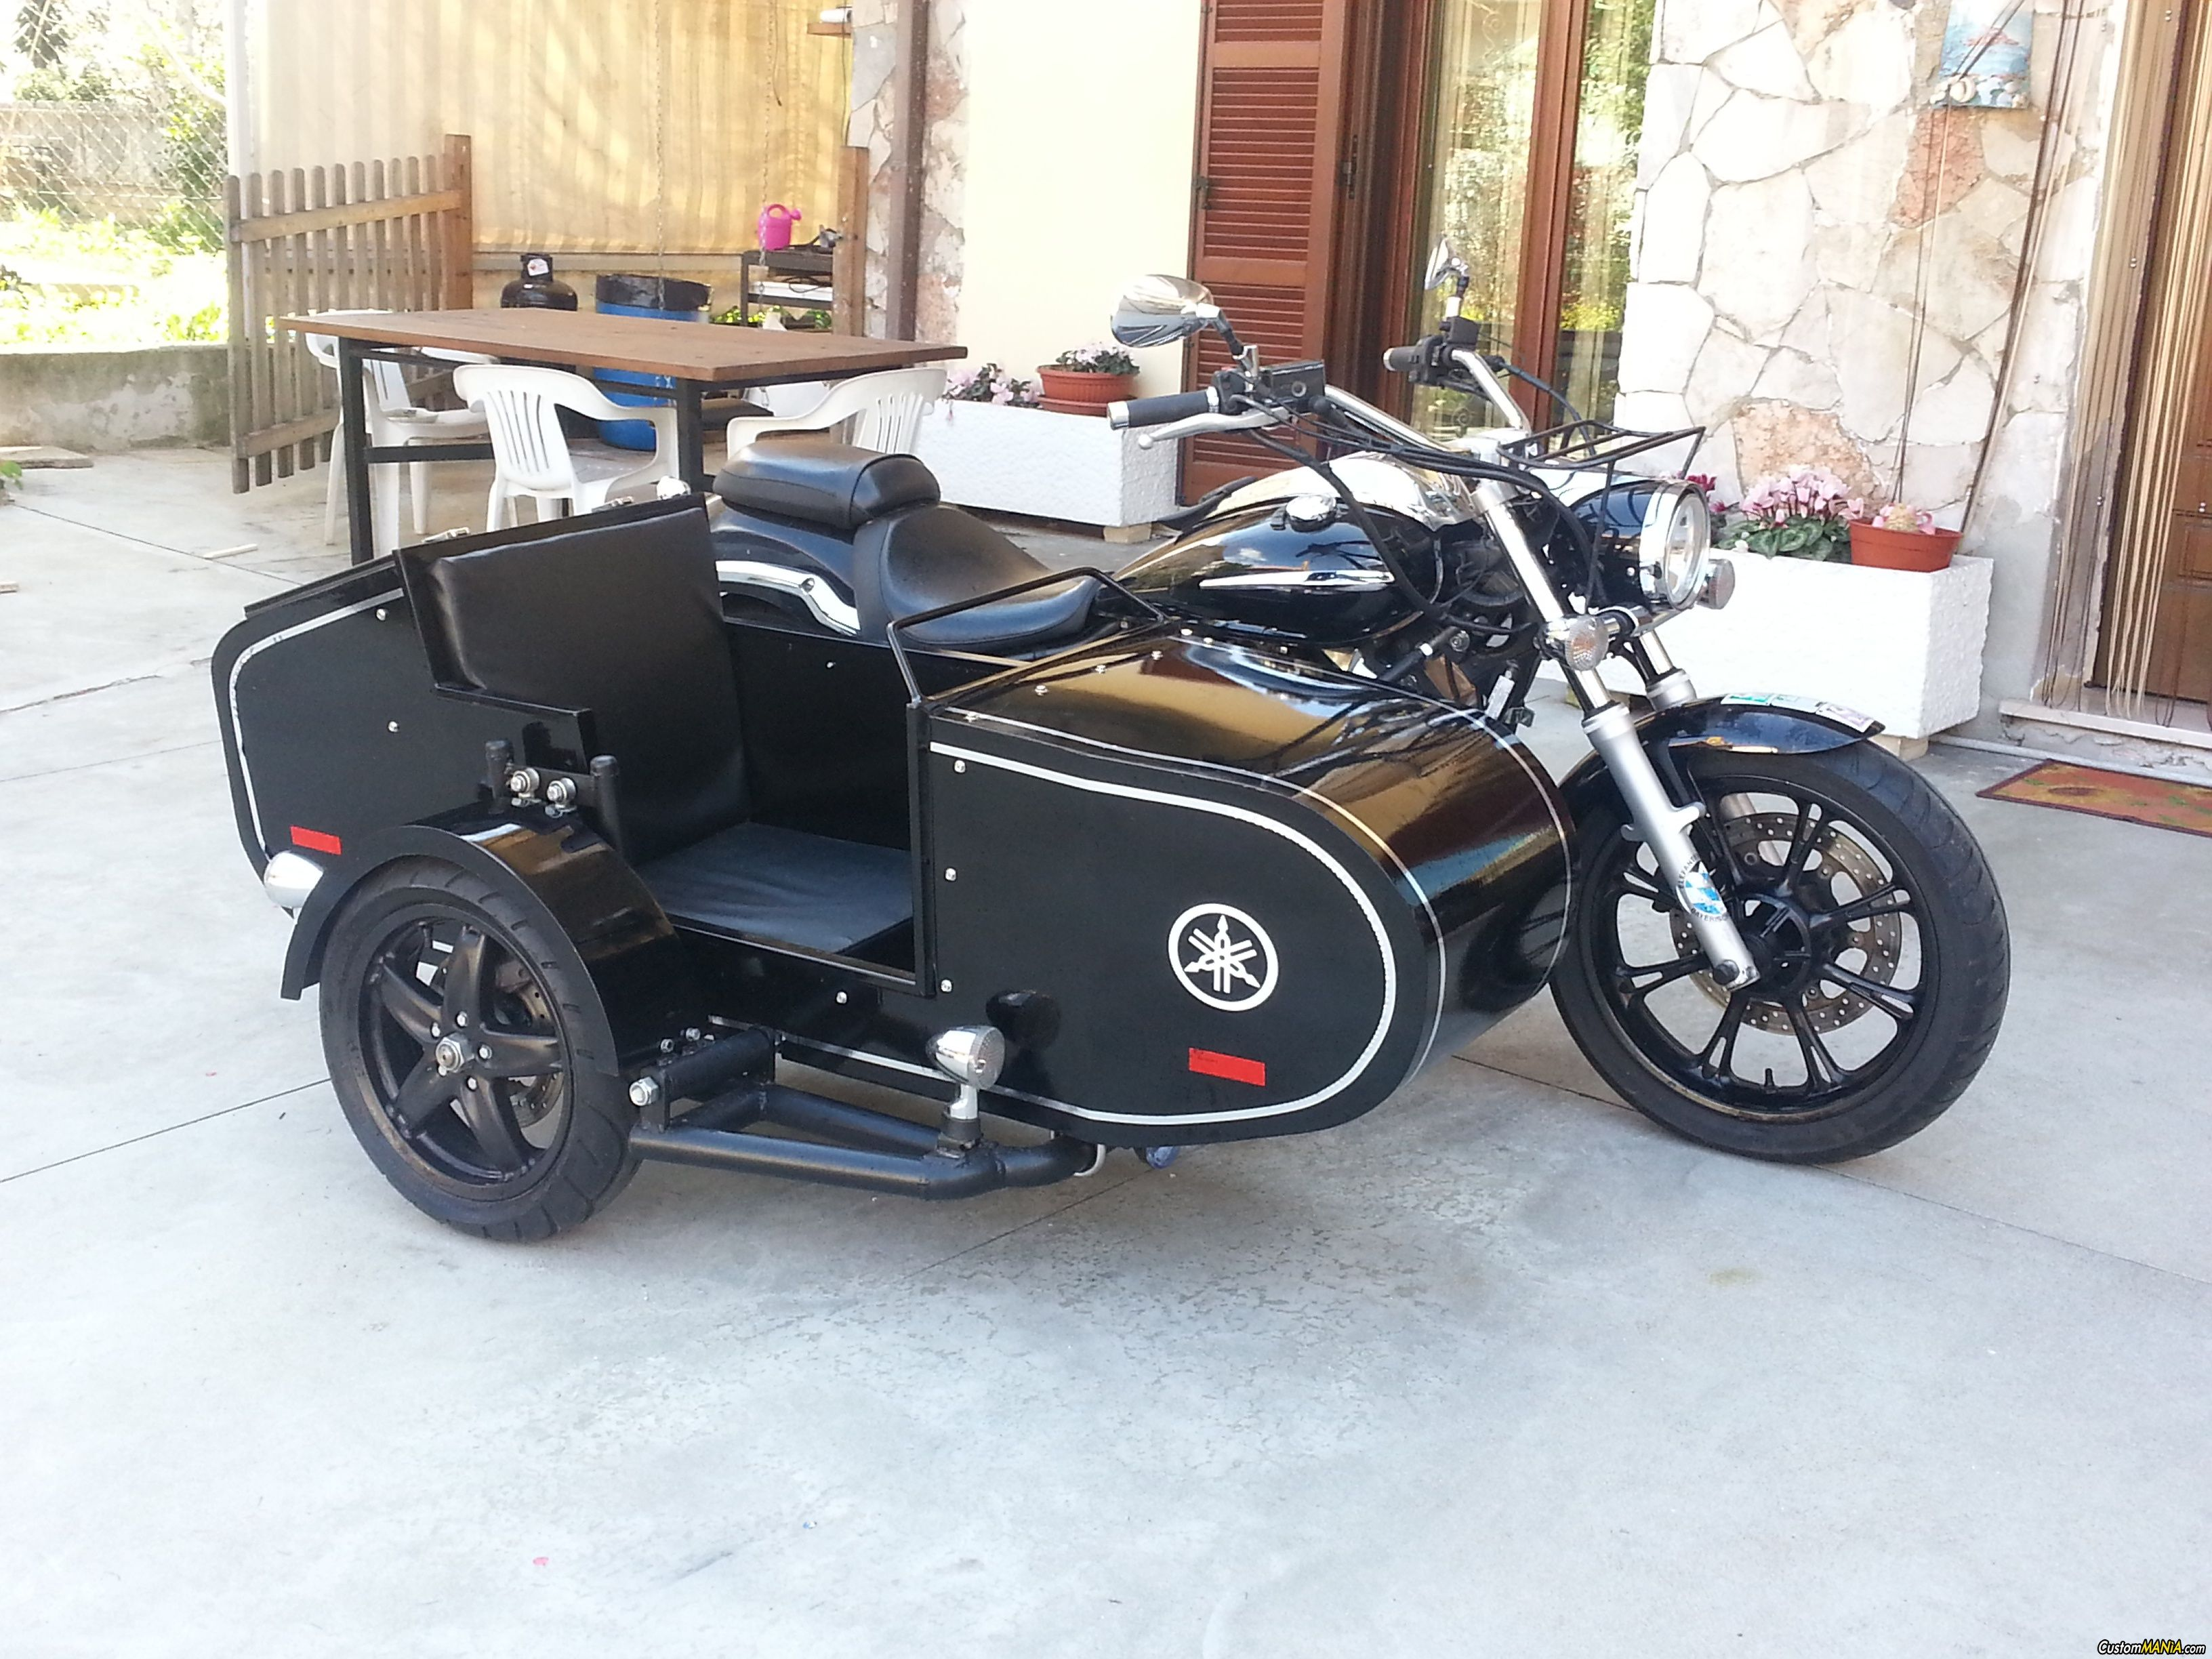 yamaha xvs 950 midnight star with handmade sidecar see more on star bolt. Black Bedroom Furniture Sets. Home Design Ideas